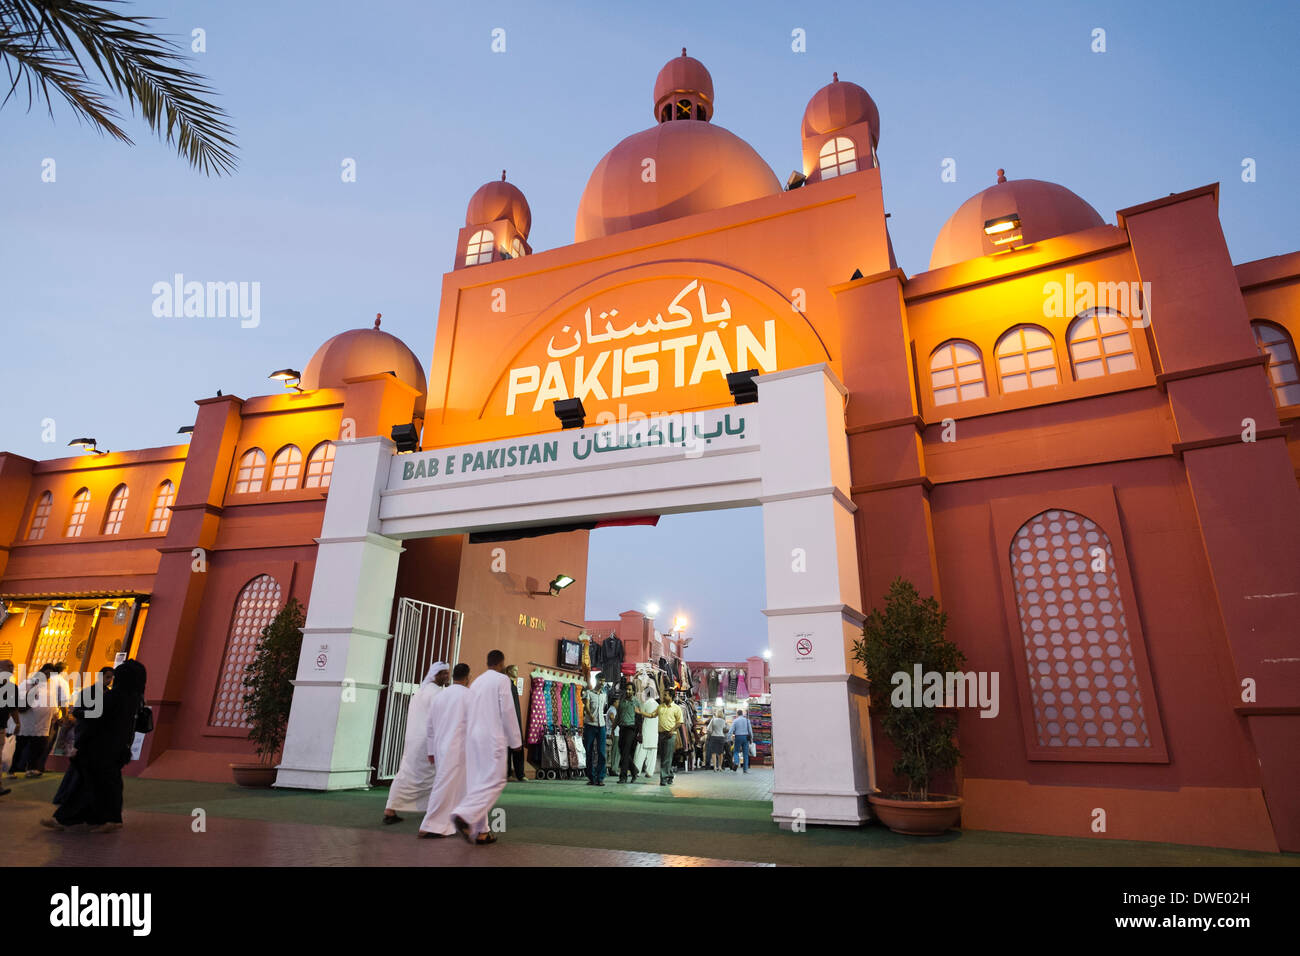 Entrance to Pakistan Pavilion at Global Village tourist cultural attraction in Dubai United Arab Emirates - Stock Image